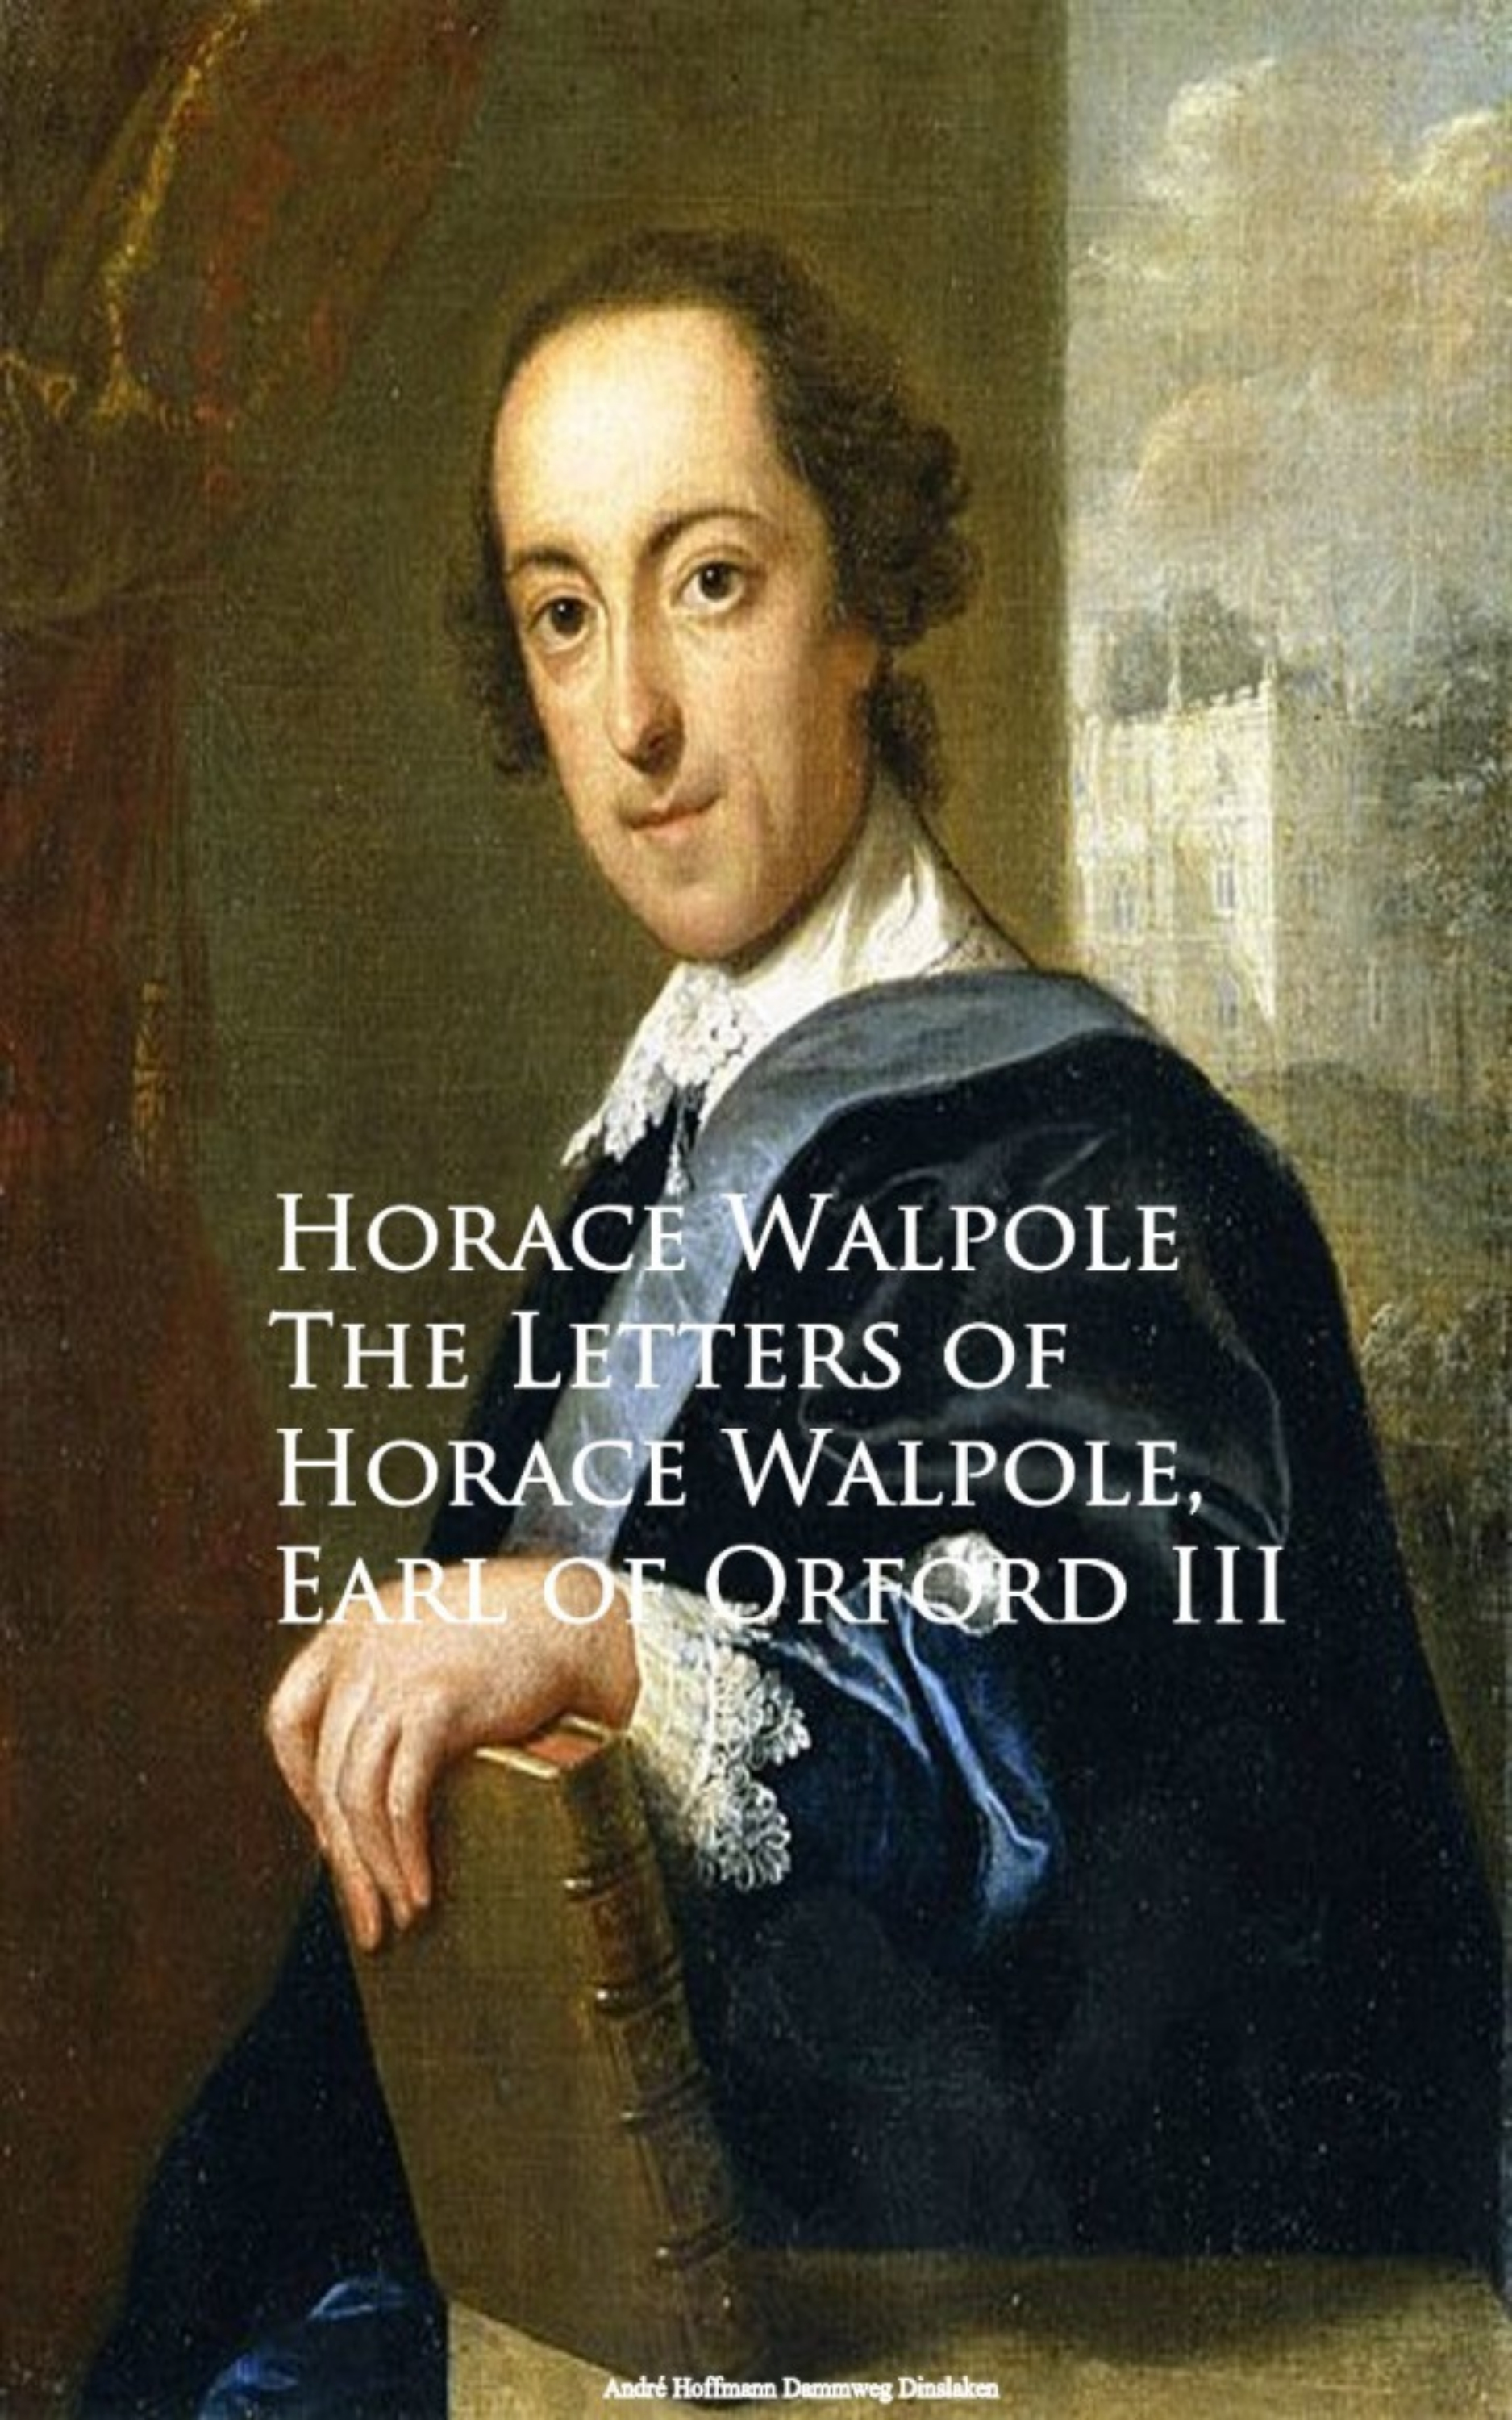 Horace Walpole The Letters of Horace Walpole, Earl of Orford III the odes of horace